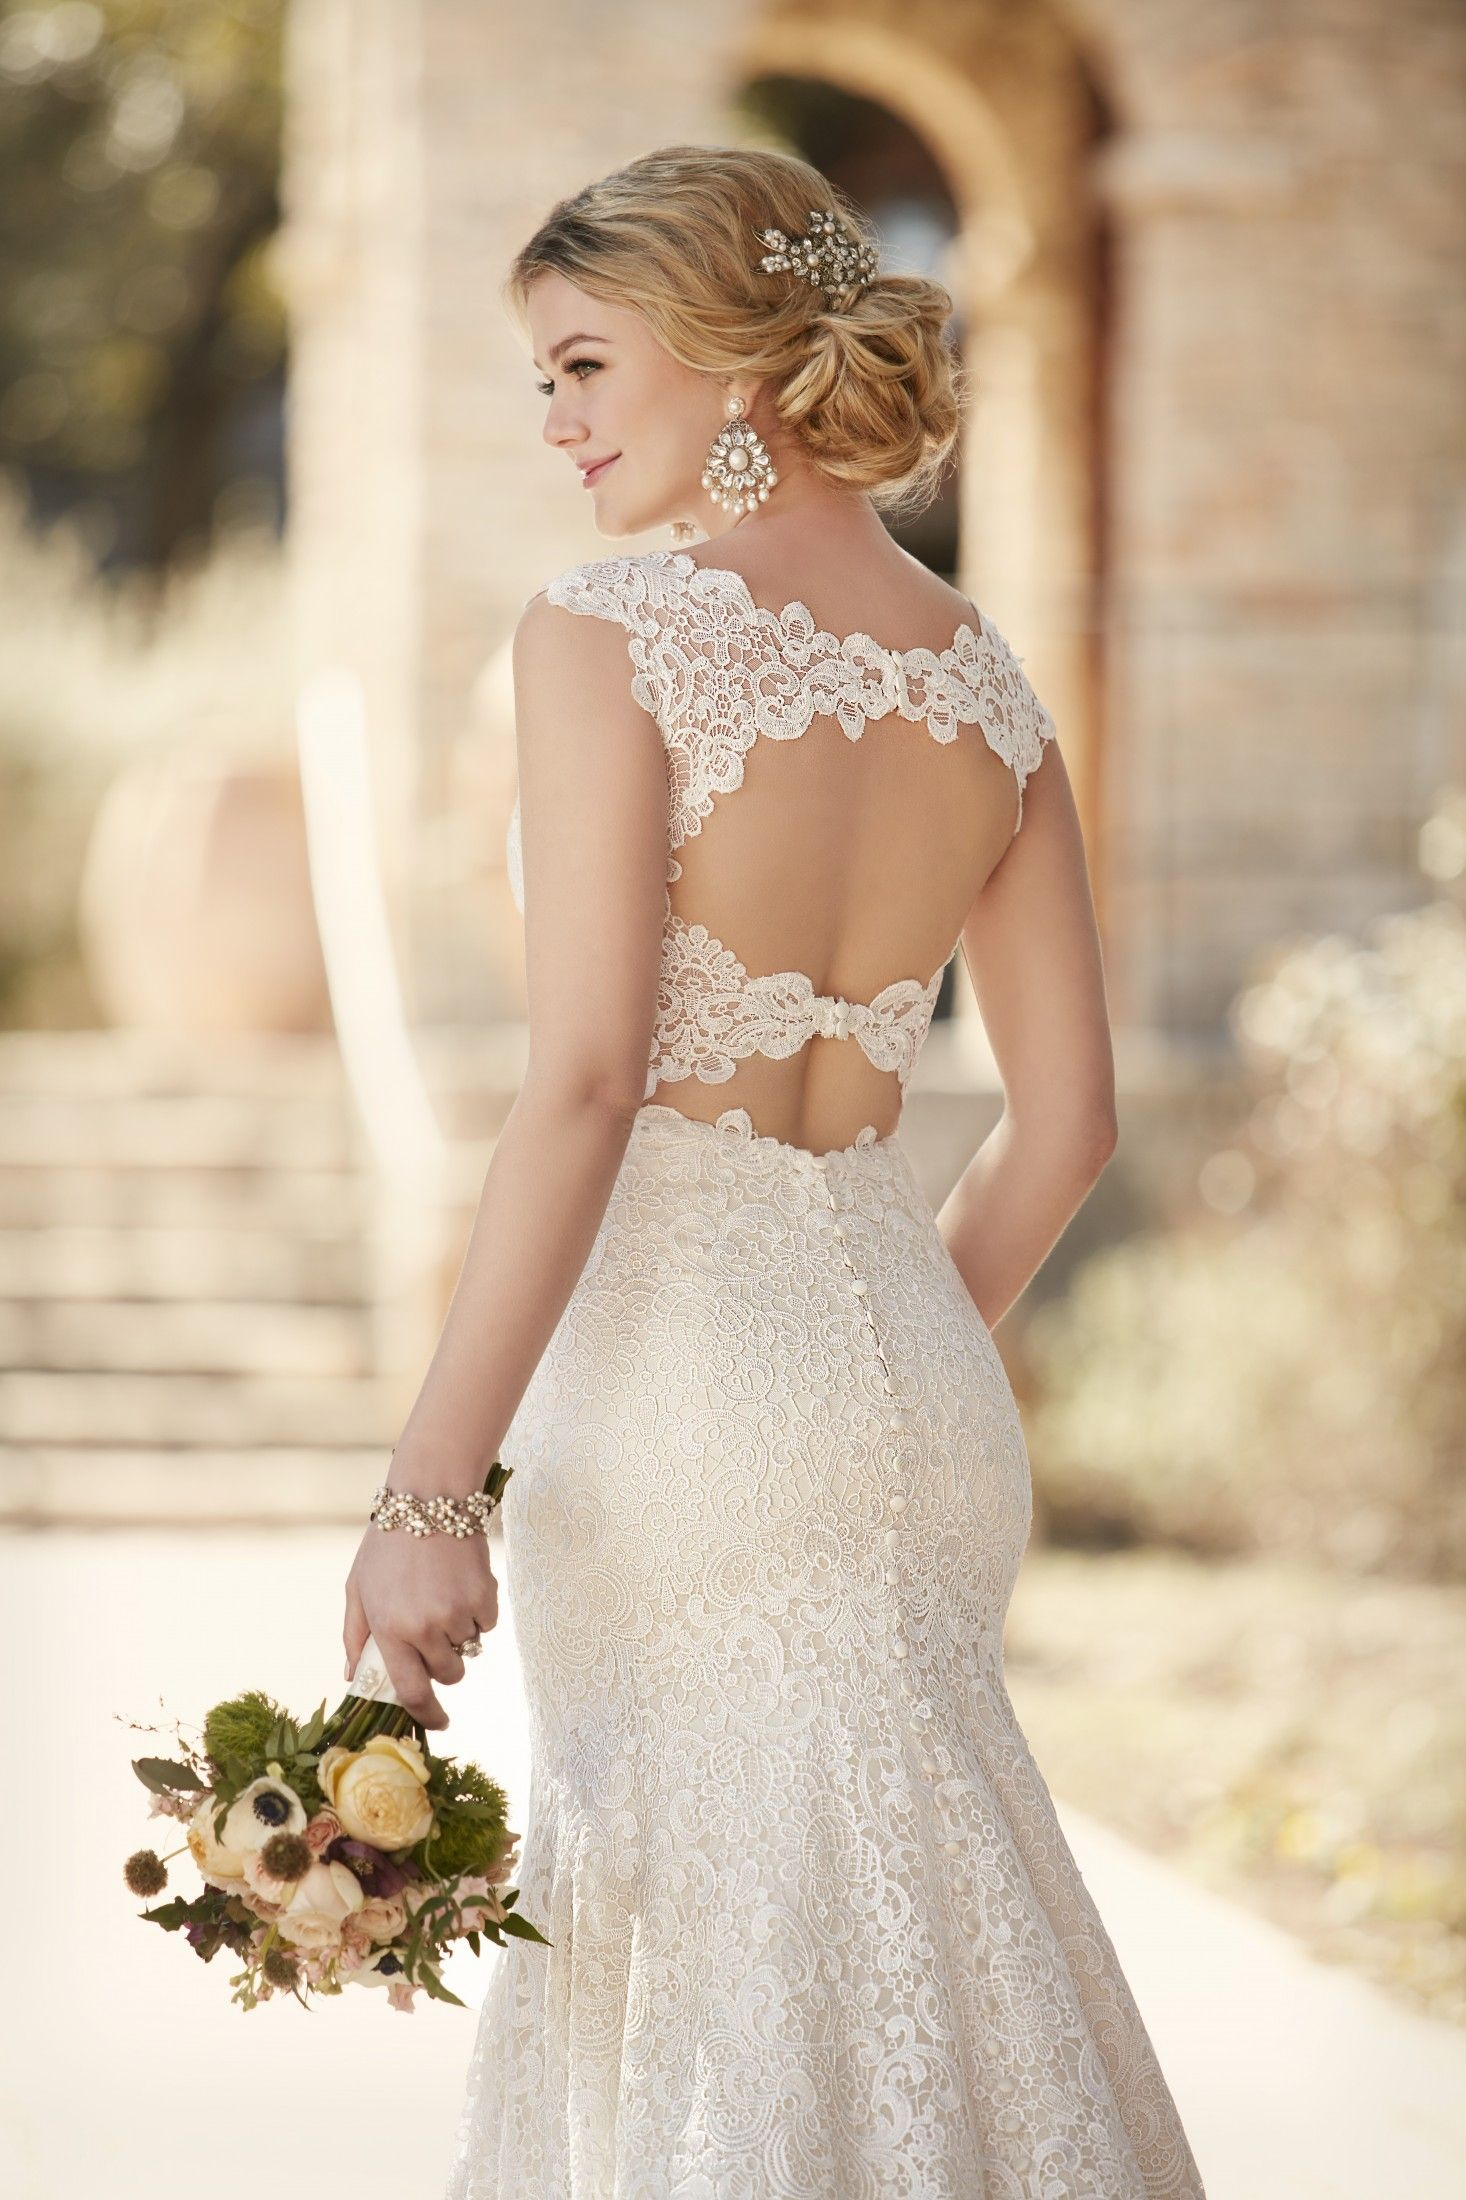 This designer sheath wedding dress from Essense of Australia is made